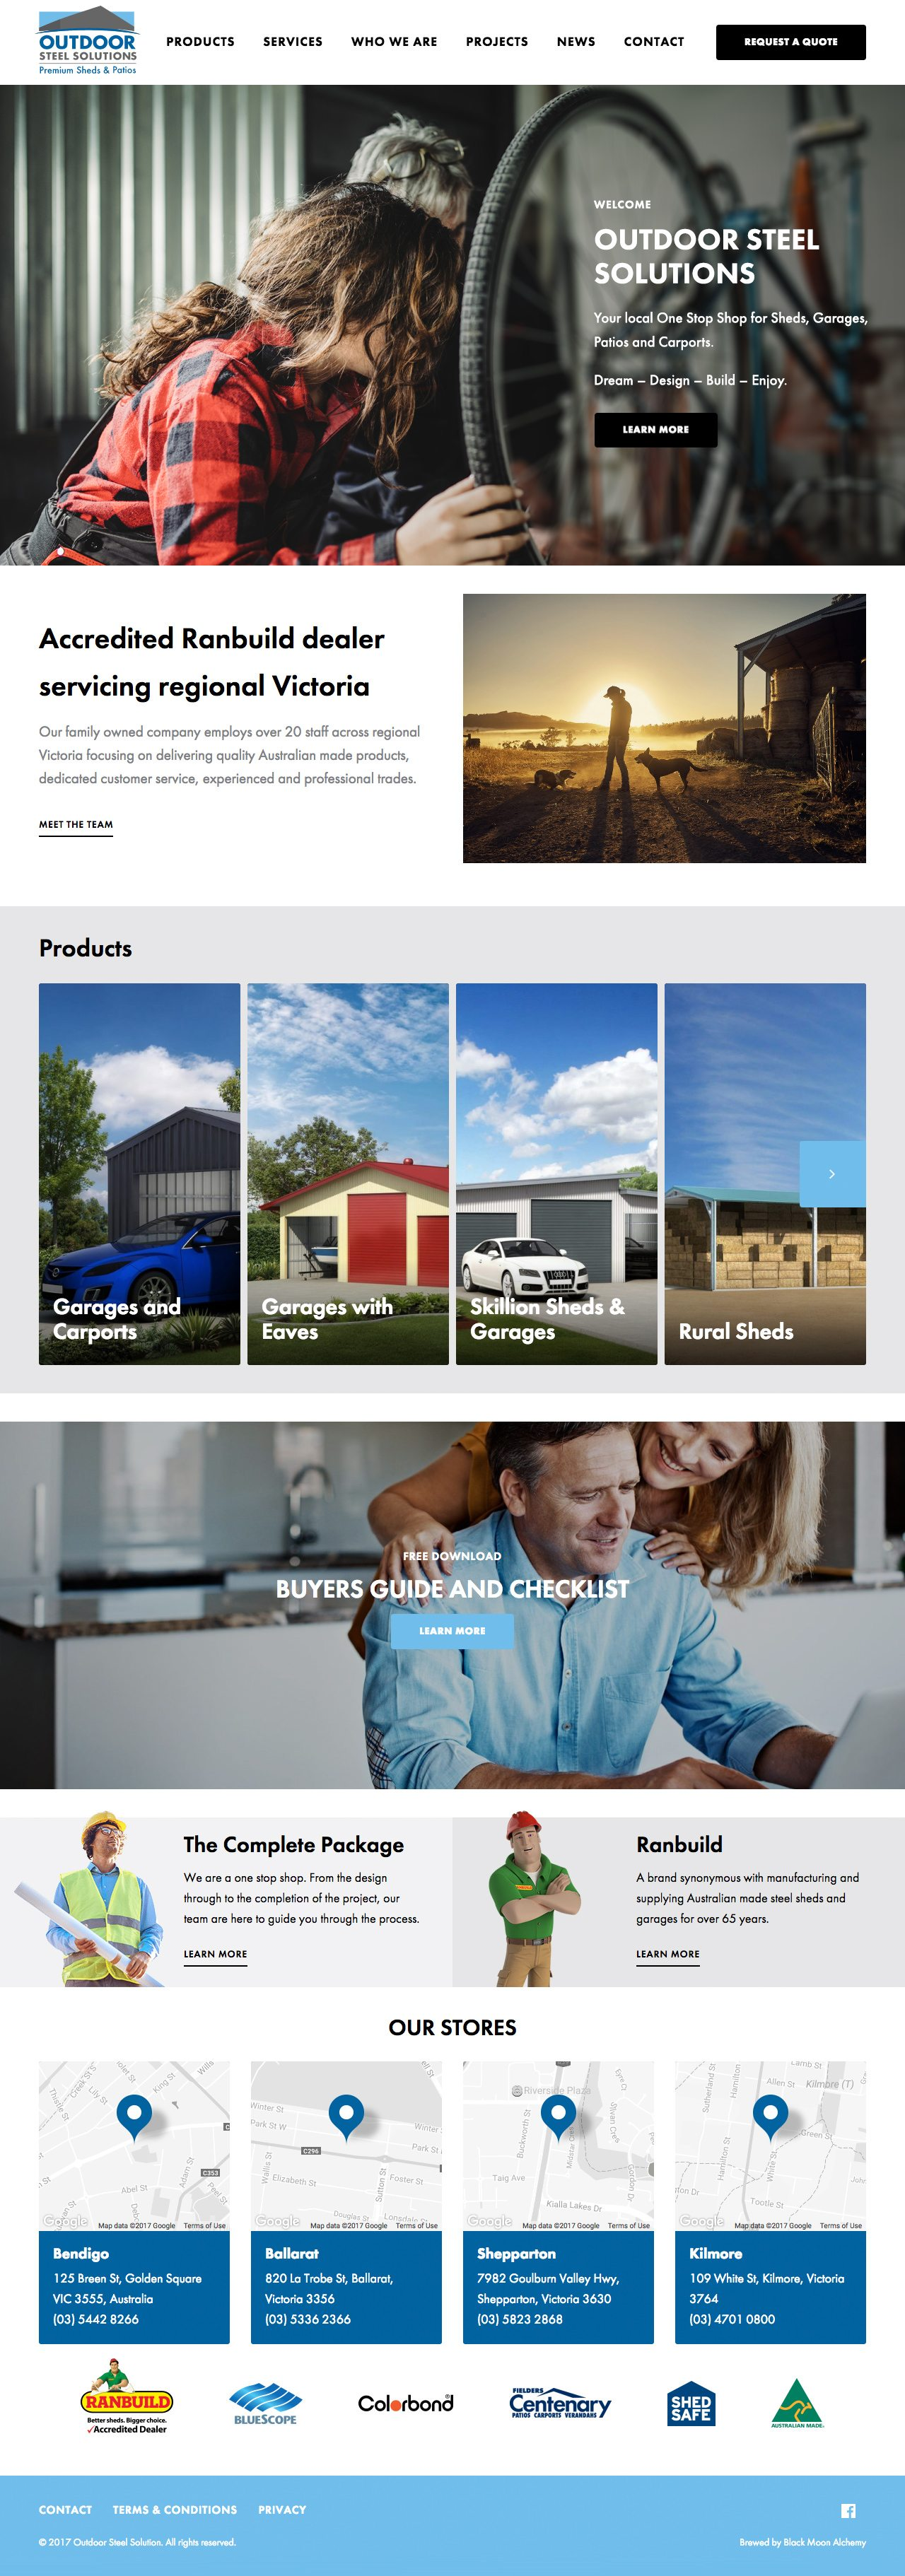 Outdoor Steel Solutions website homepage